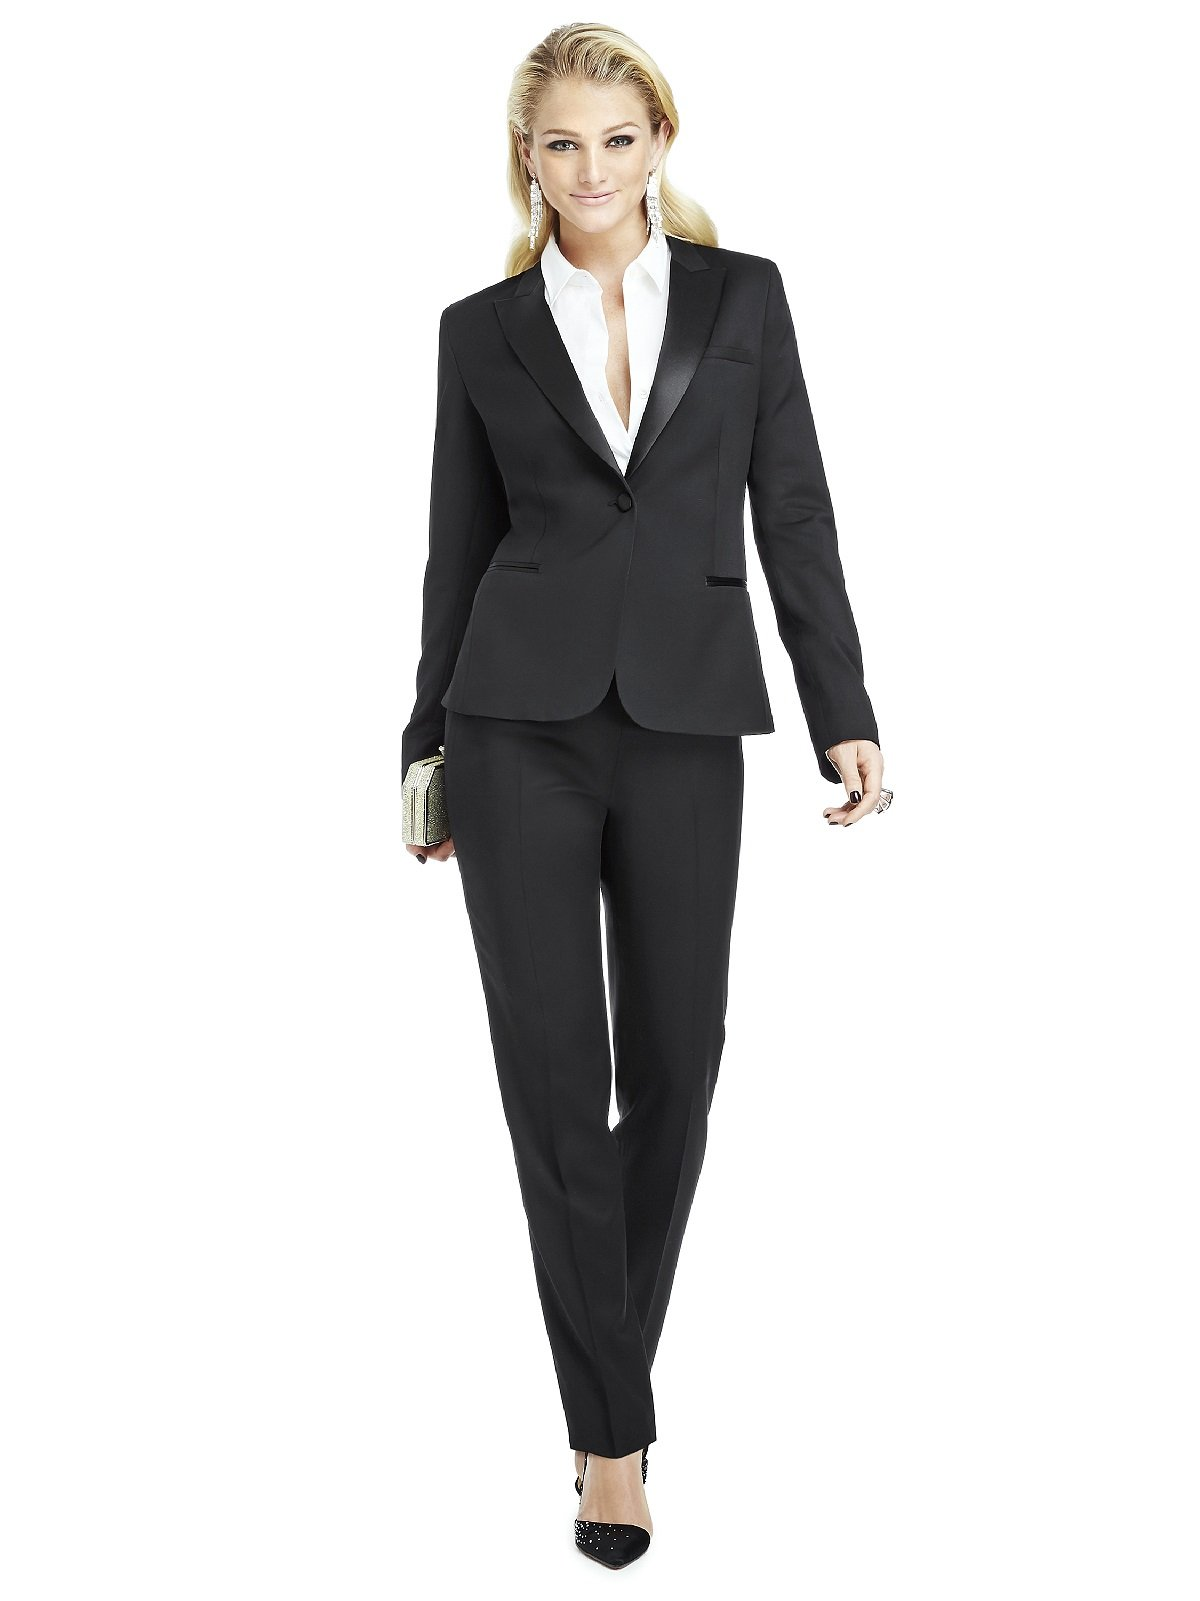 Women's Marlowe Peak Collar Wool Tuxedo Jacket by Dessy Group - Black - Size 18